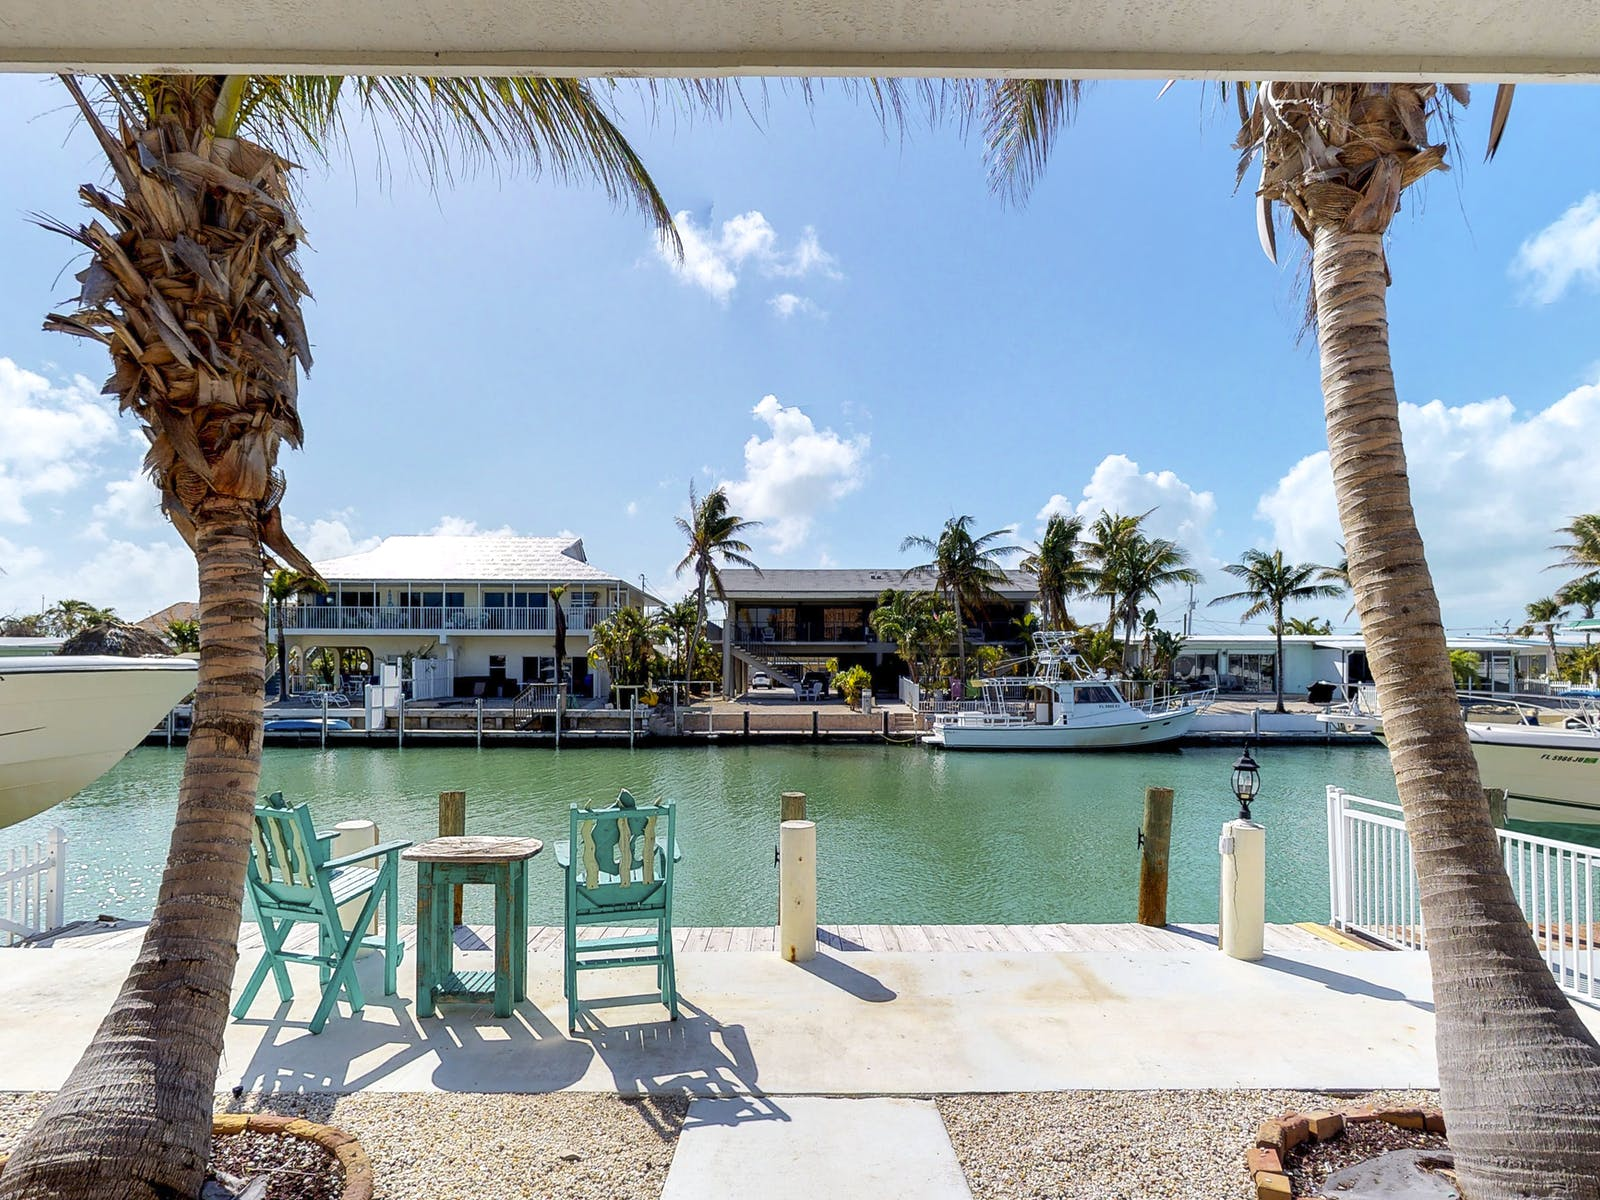 Vacation rental in the Florida Keys with a dock